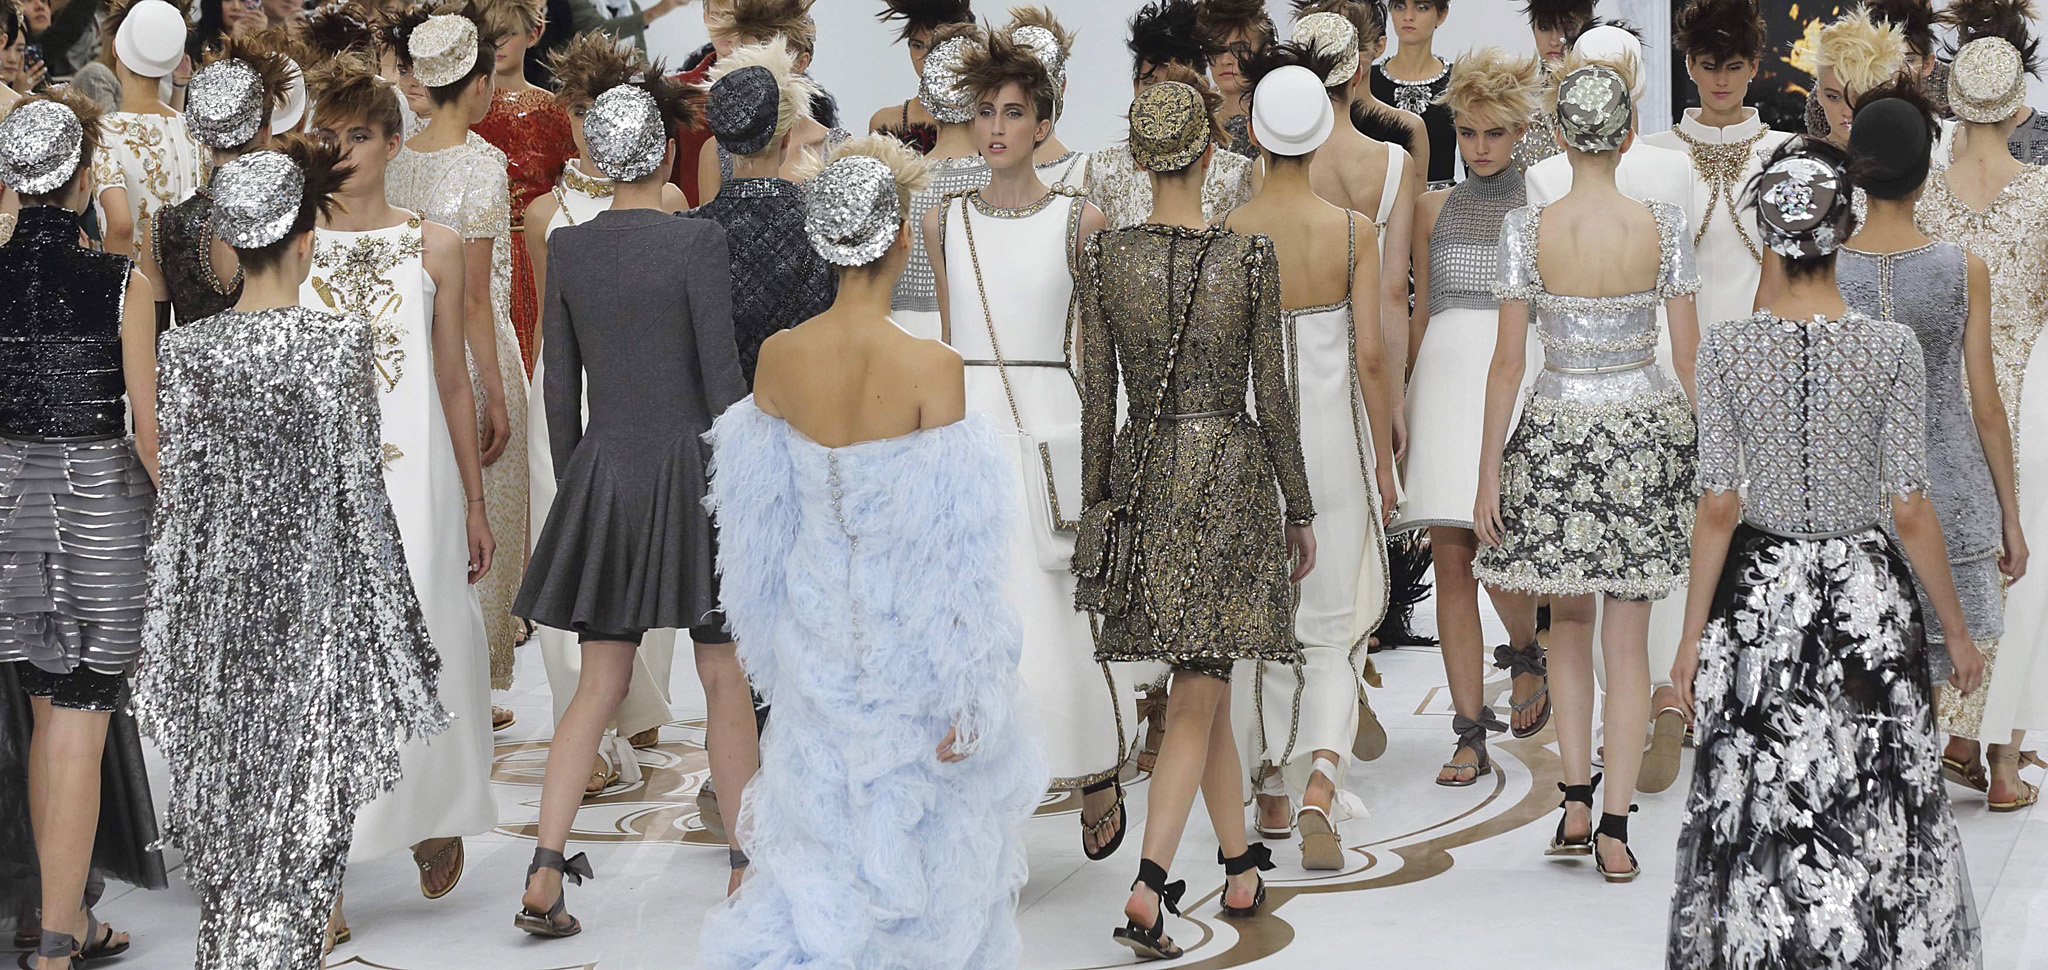 Models present creations by German designer Karl Lagerfeld at the end of his Haute Couture Fall/Winter 2014-2015 fashion show for French fashion house Chanel in Paris...Models present creations by German designer Karl Lagerfeld at the end of his Haute Couture Fall/Winter 2014-2015 fashion show for French fashion house Chanel in Paris July 8, 2014. REUTERS/Philippe Wojazer (FRANCE - Tags: FASHION)